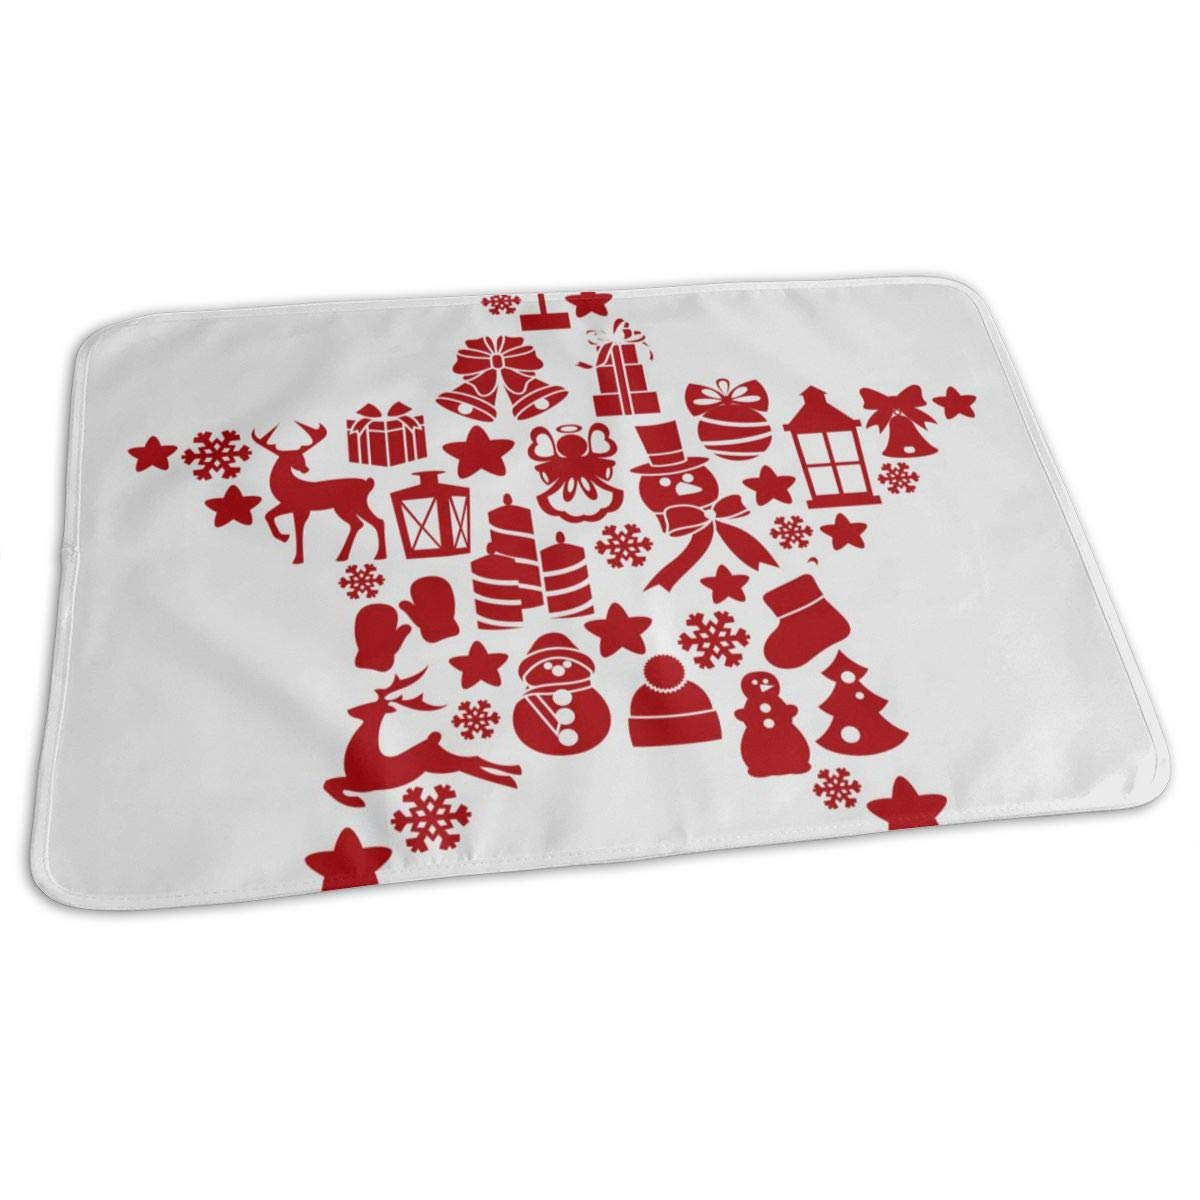 Osvbs Lovely Baby Reusable Waterproof Portable Christmas Elements and Decorations Changing Pad Home Travel 27.5''x19.7'' by Osvbs